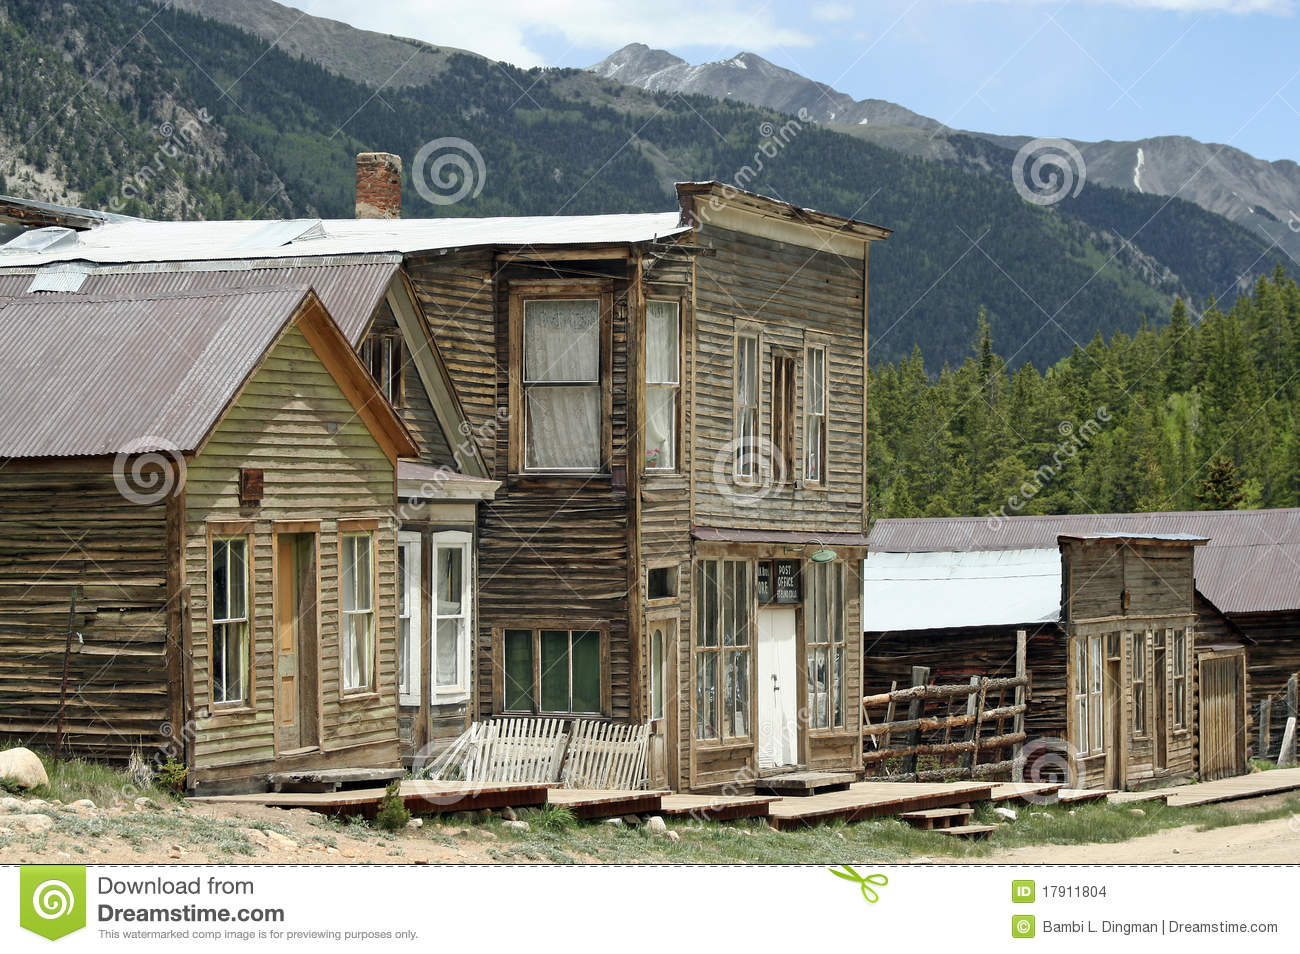 Intriguing Wild West Ghost Towns | Urban Ghosts